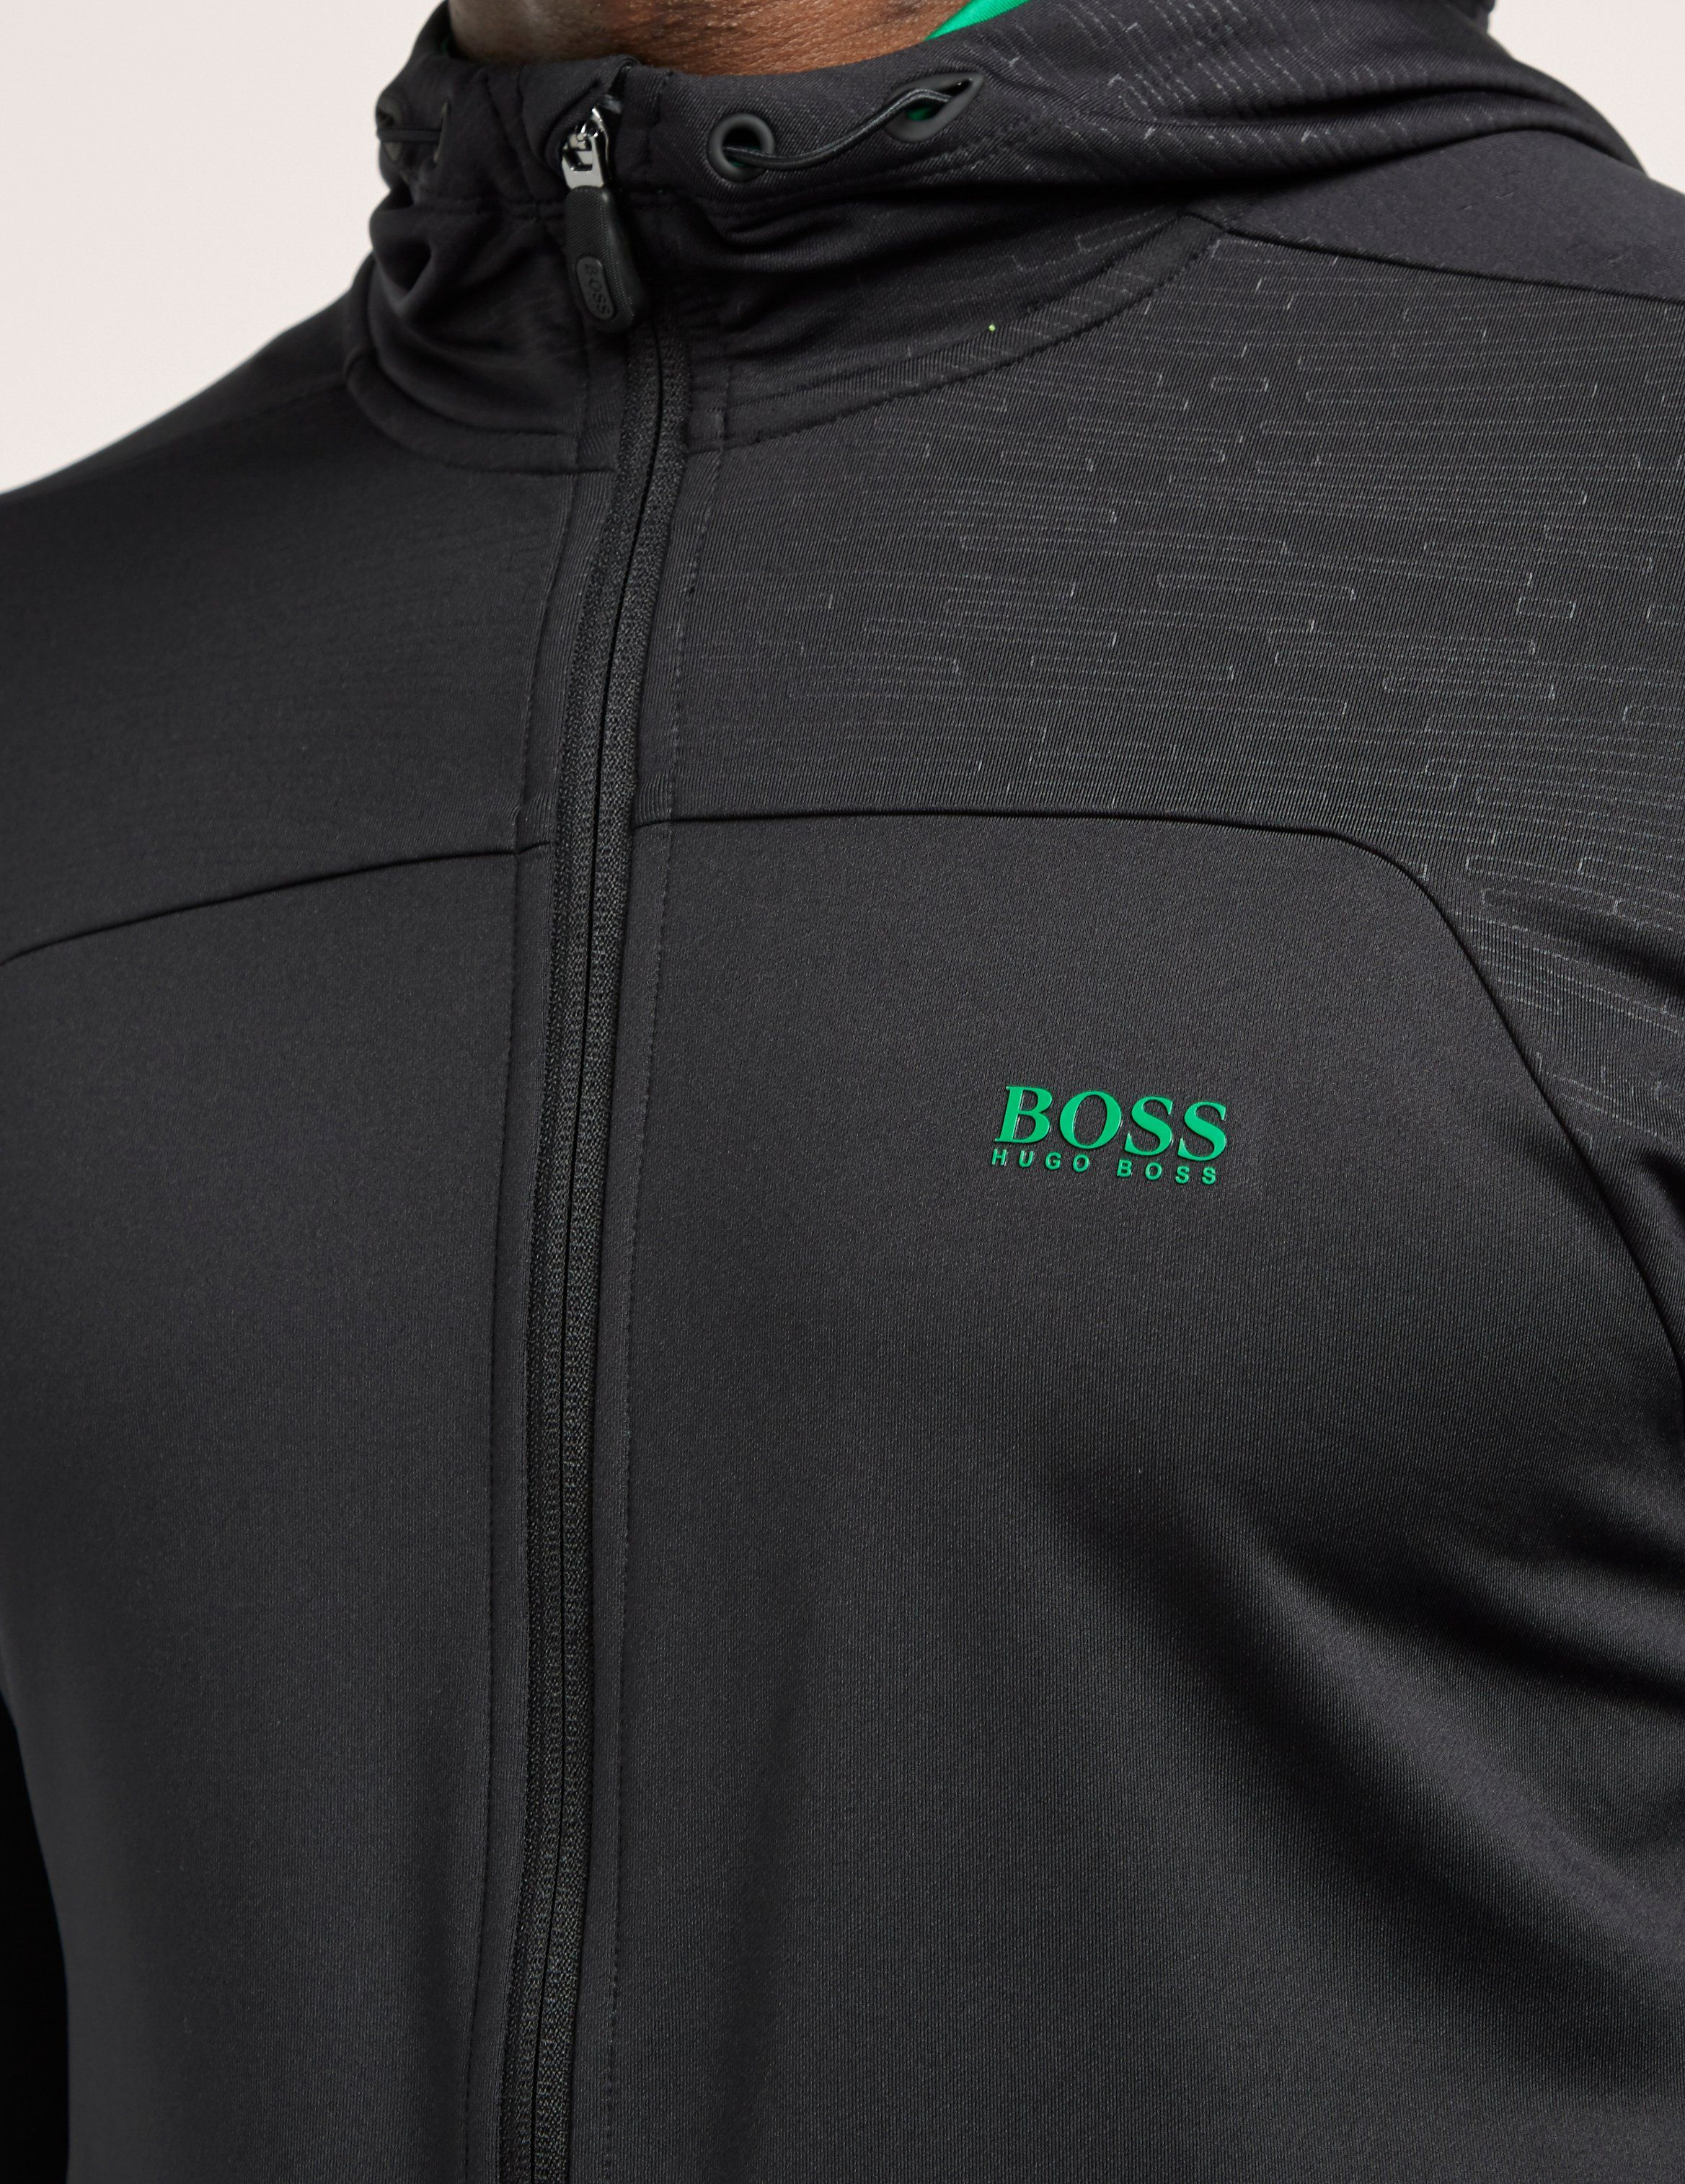 BOSS Green Saggy Zip Up Hoody